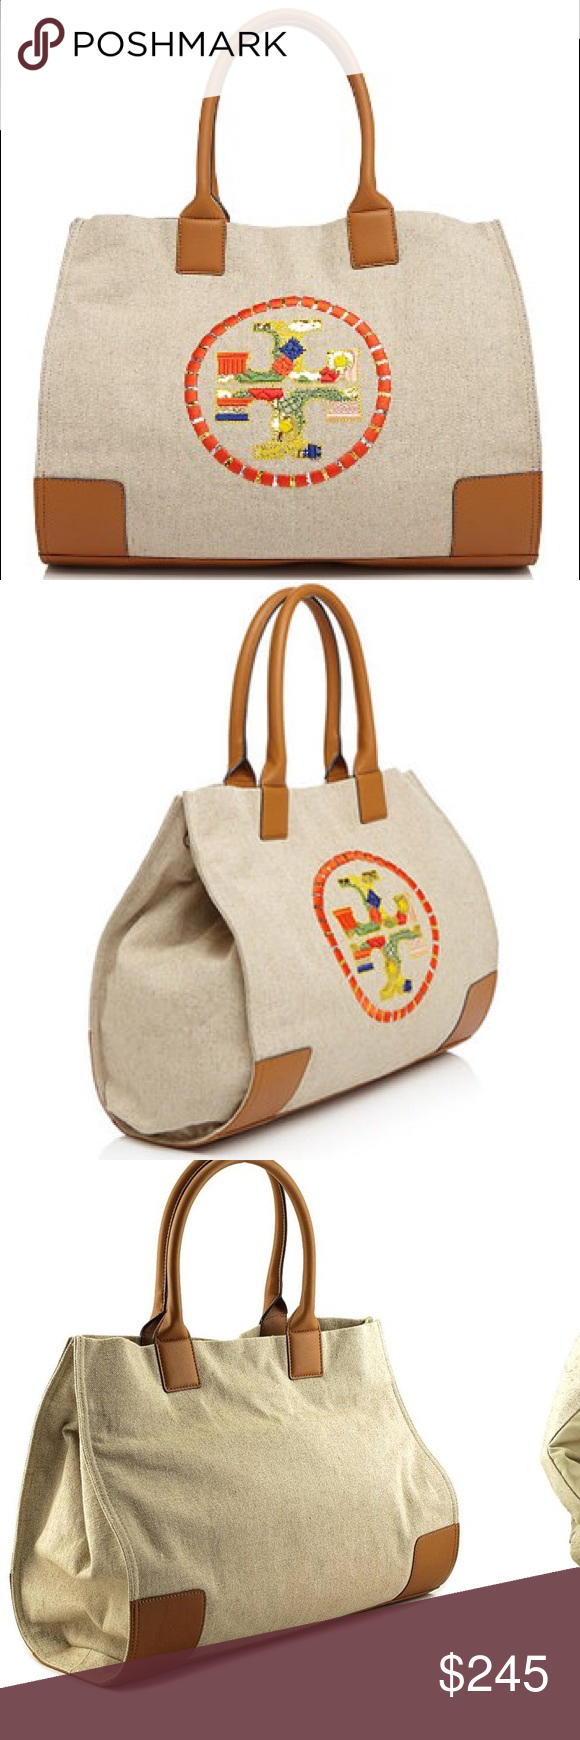 73cac78ded51 TORY BURCH Ella Embroidered Nylon Tote Natural A perennial favorite —  updated with eclectic detailing.